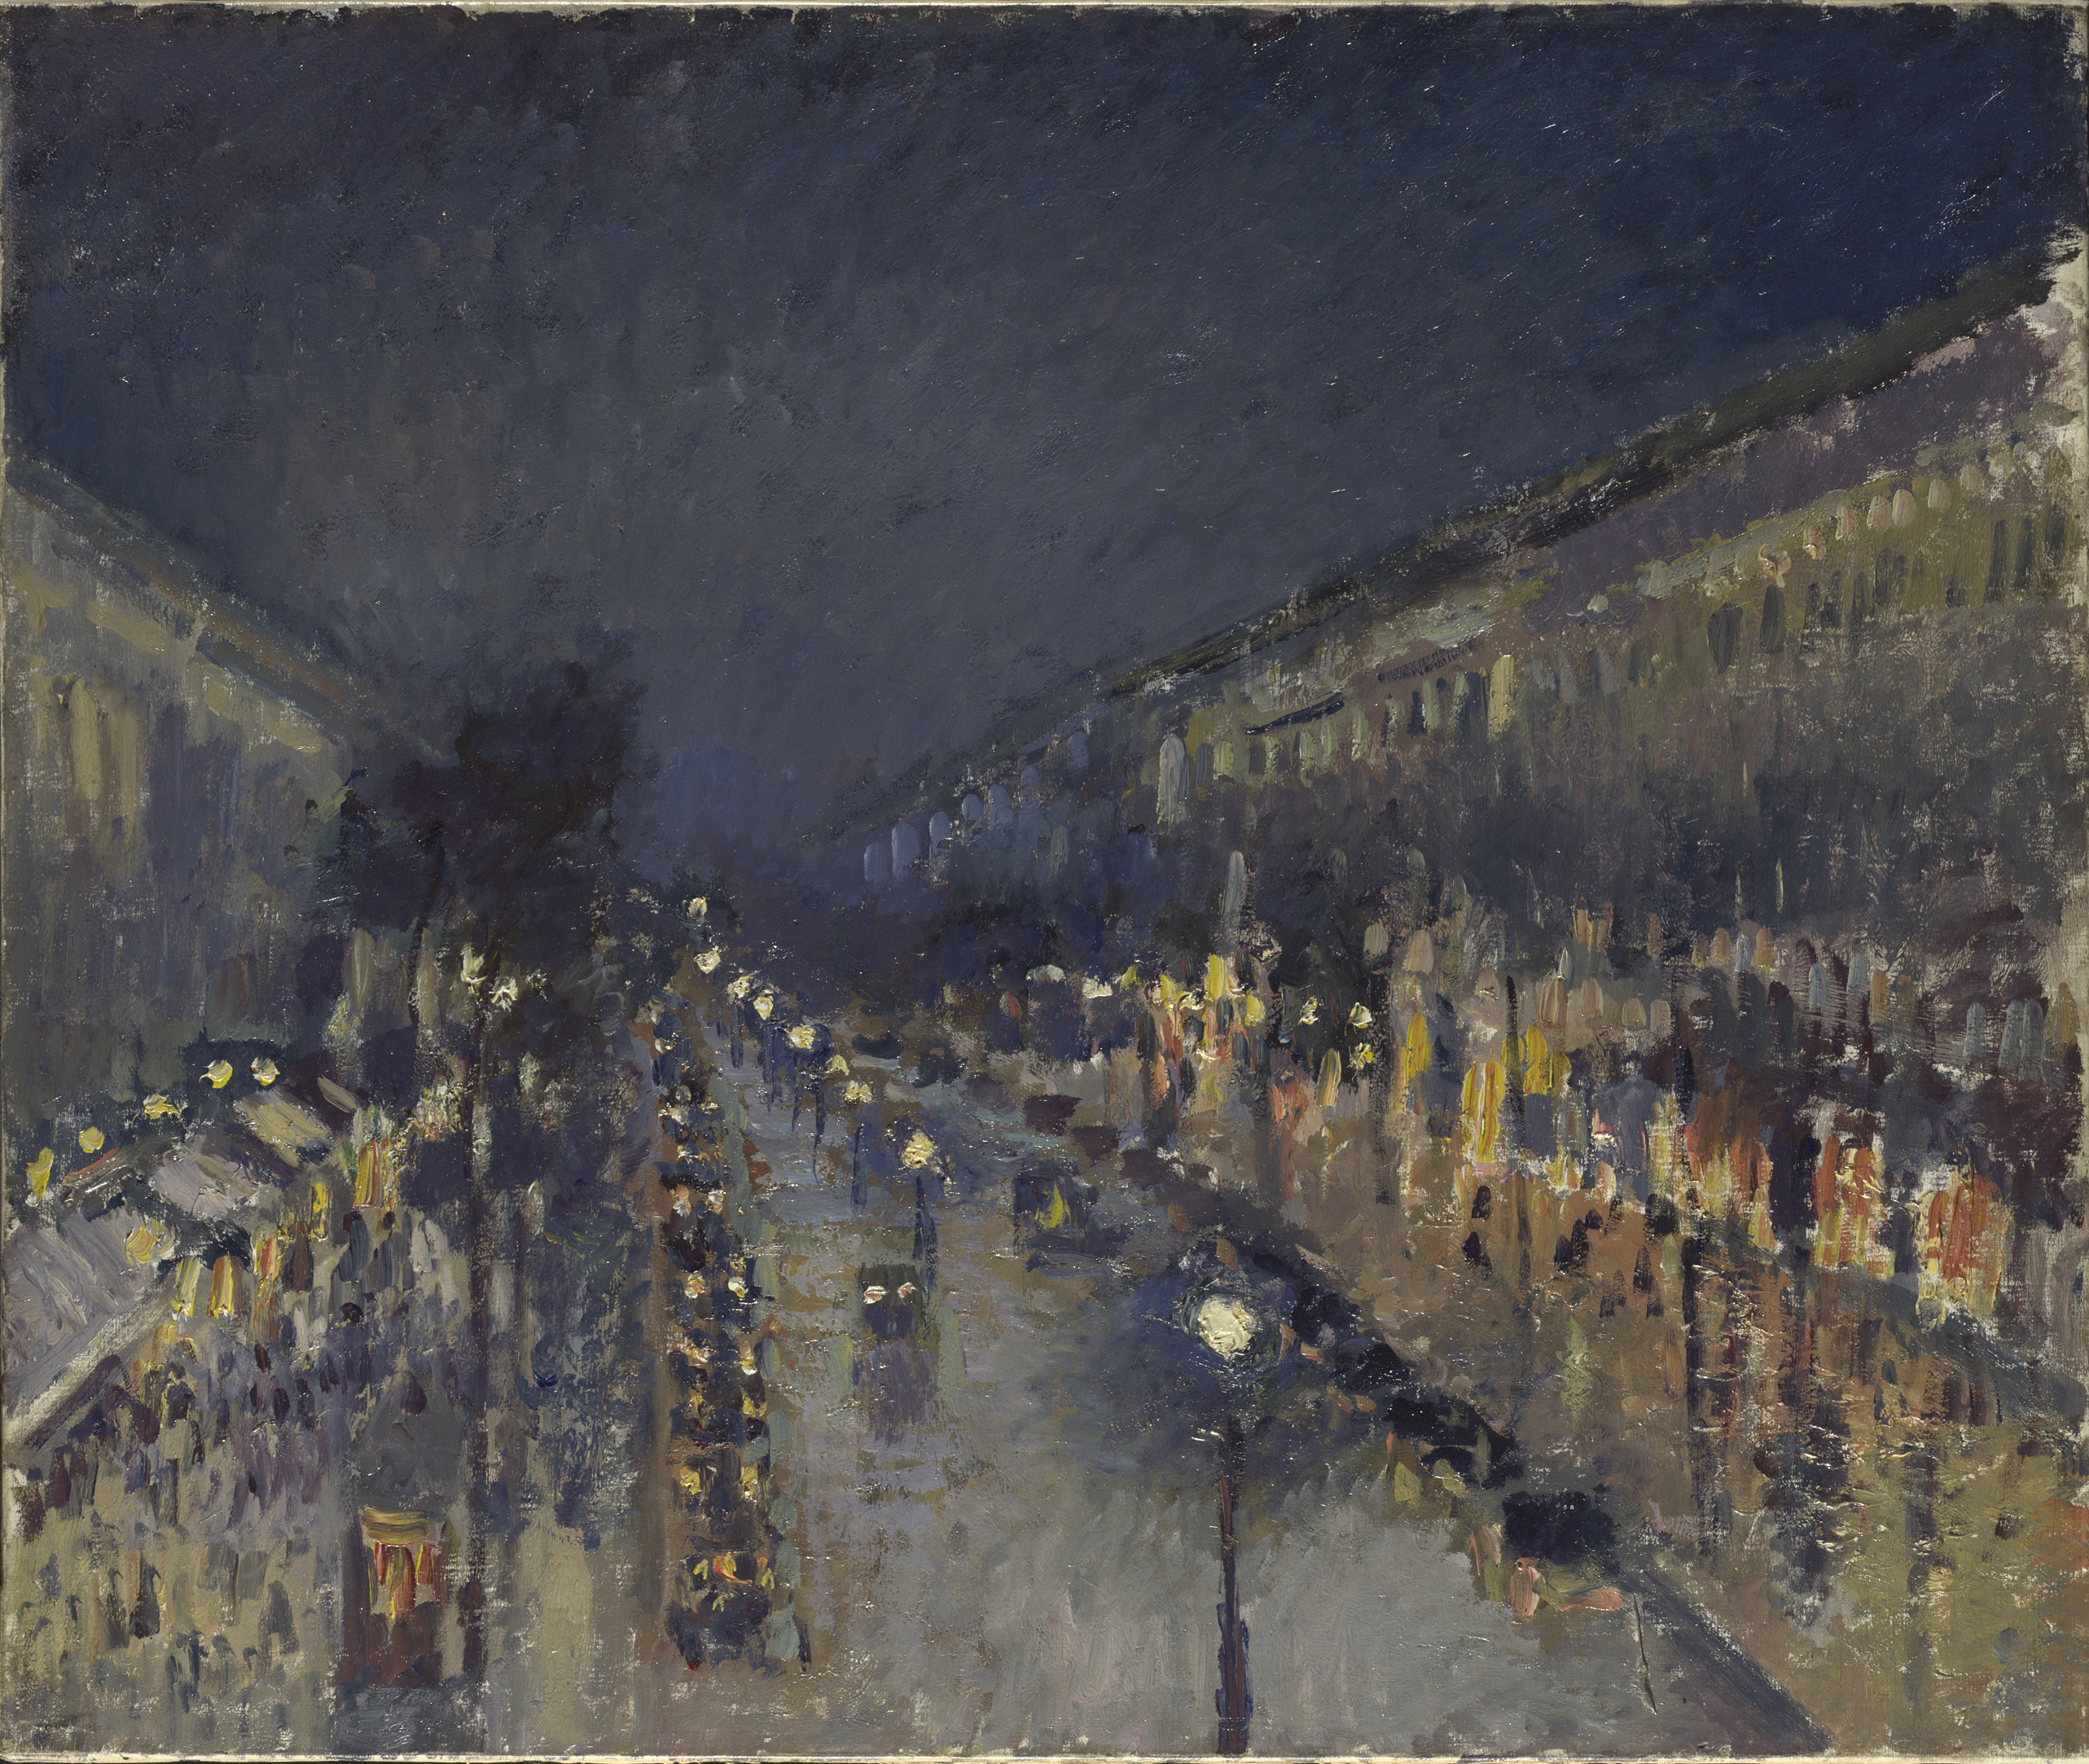 The Boulevard Montmartre at Night - Camille Pissarro, 1897